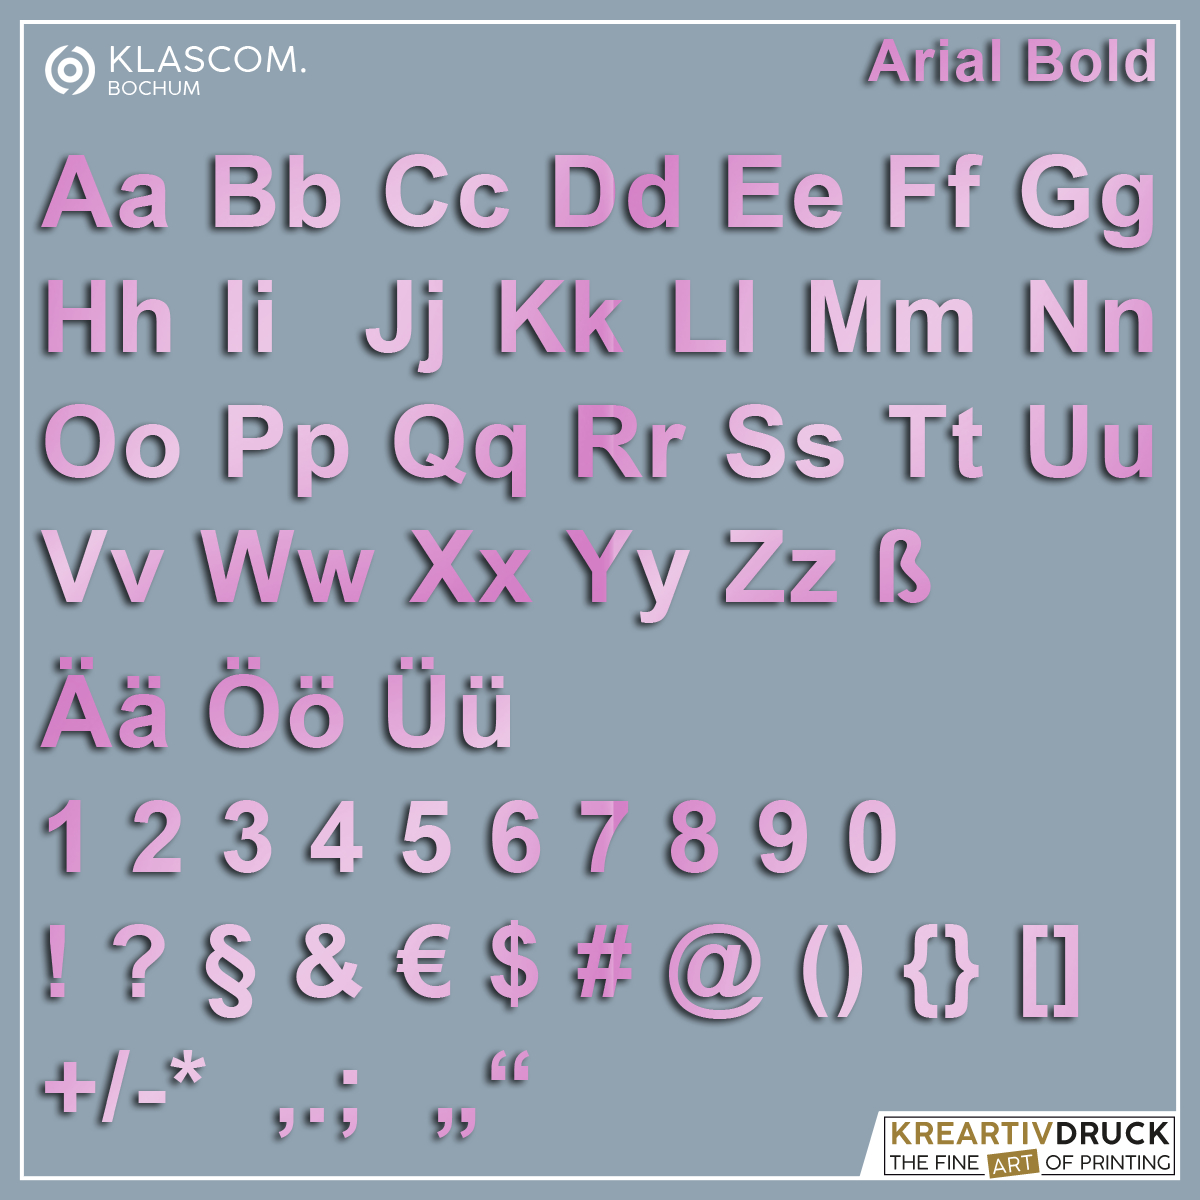 arial-bold-butlerfinish-ros